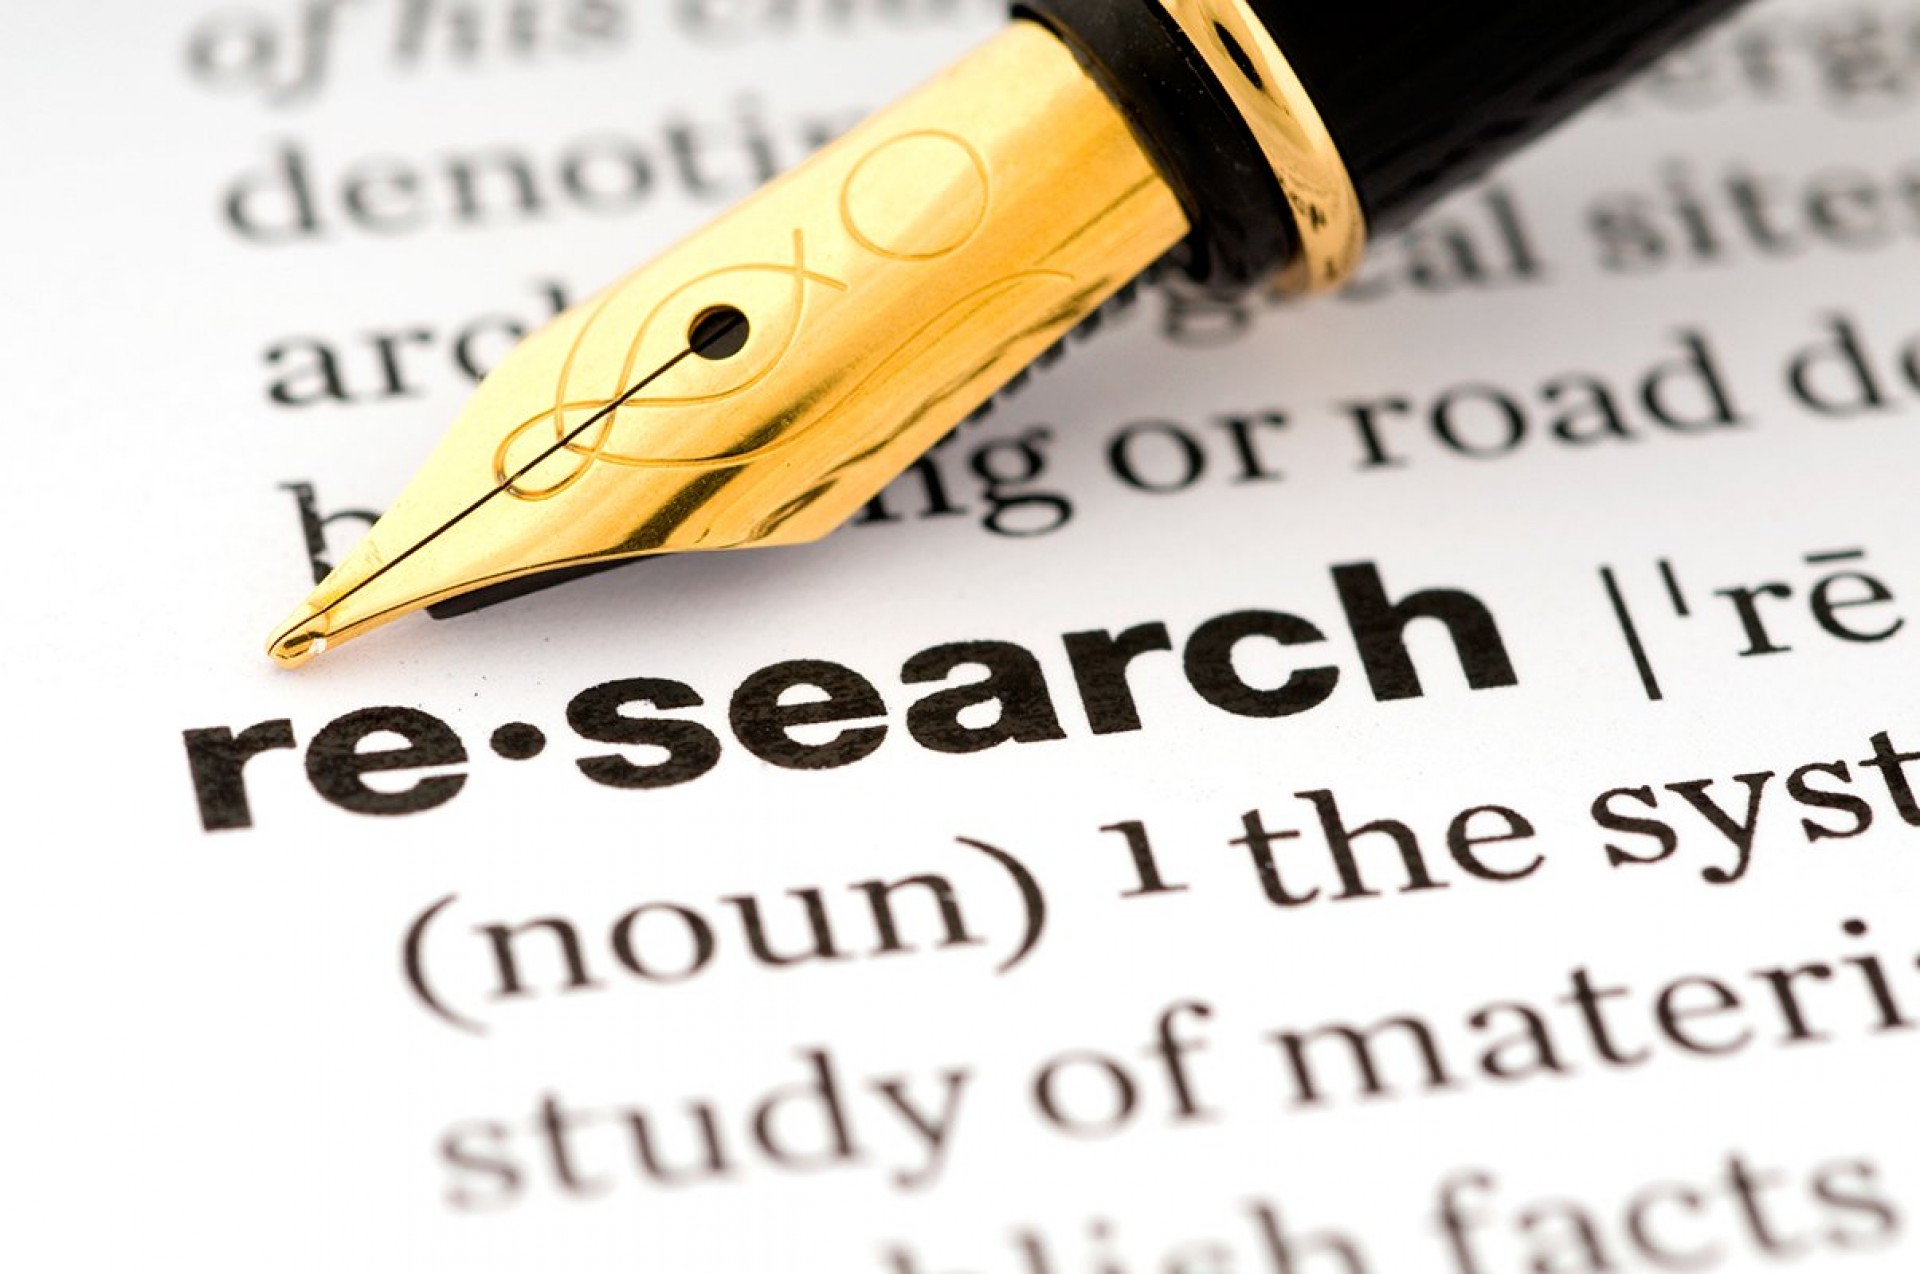 017 Research Paper Good Topics For English Surprising 102 1920